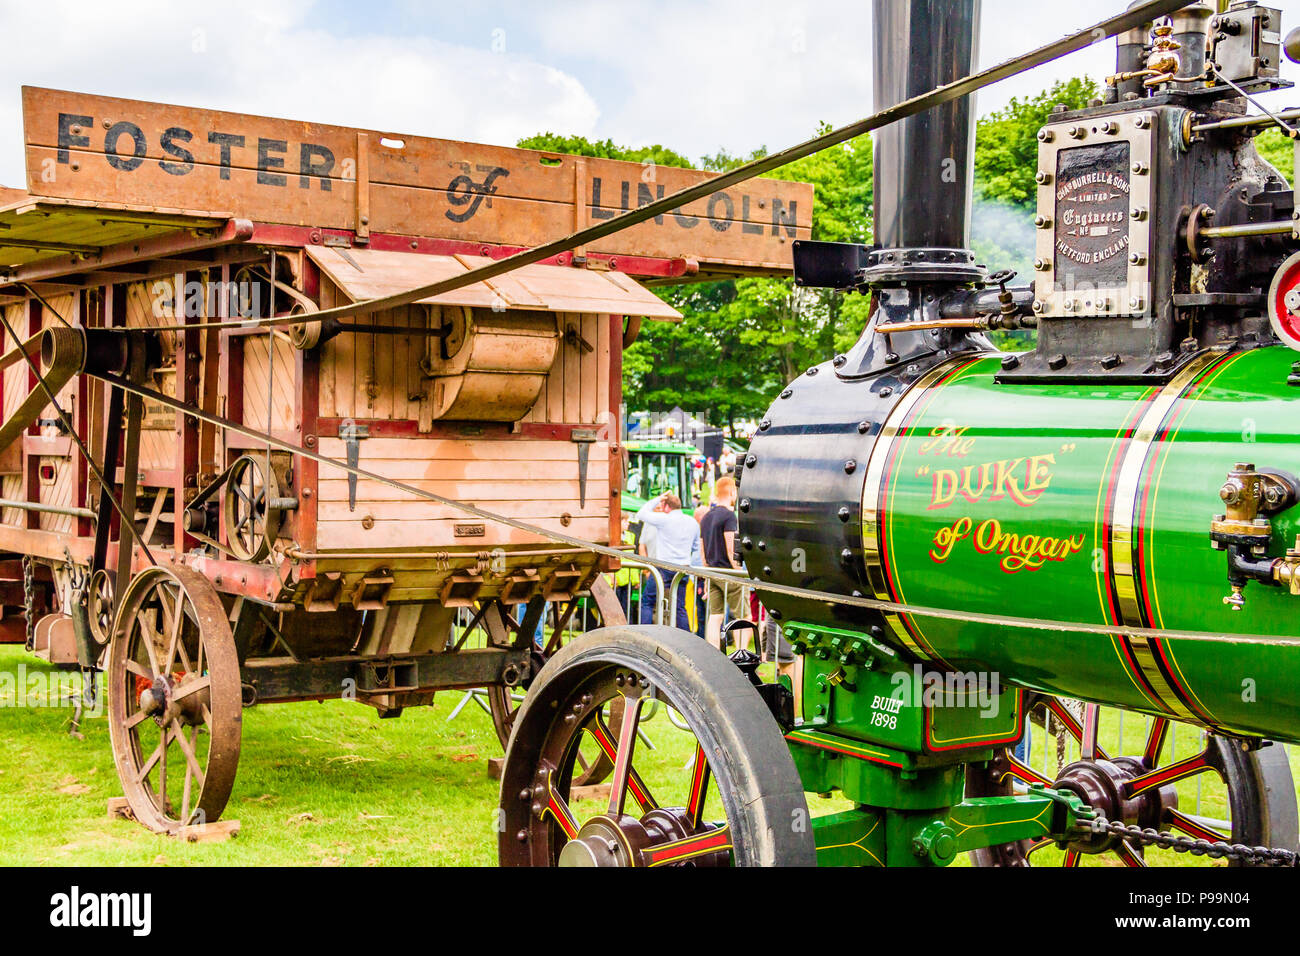 Victorian steam engine 'Duke of Ongar' operating a threshing machine built by Foster of Lincoln at the Northumberland County Show, May 2018. - Stock Image